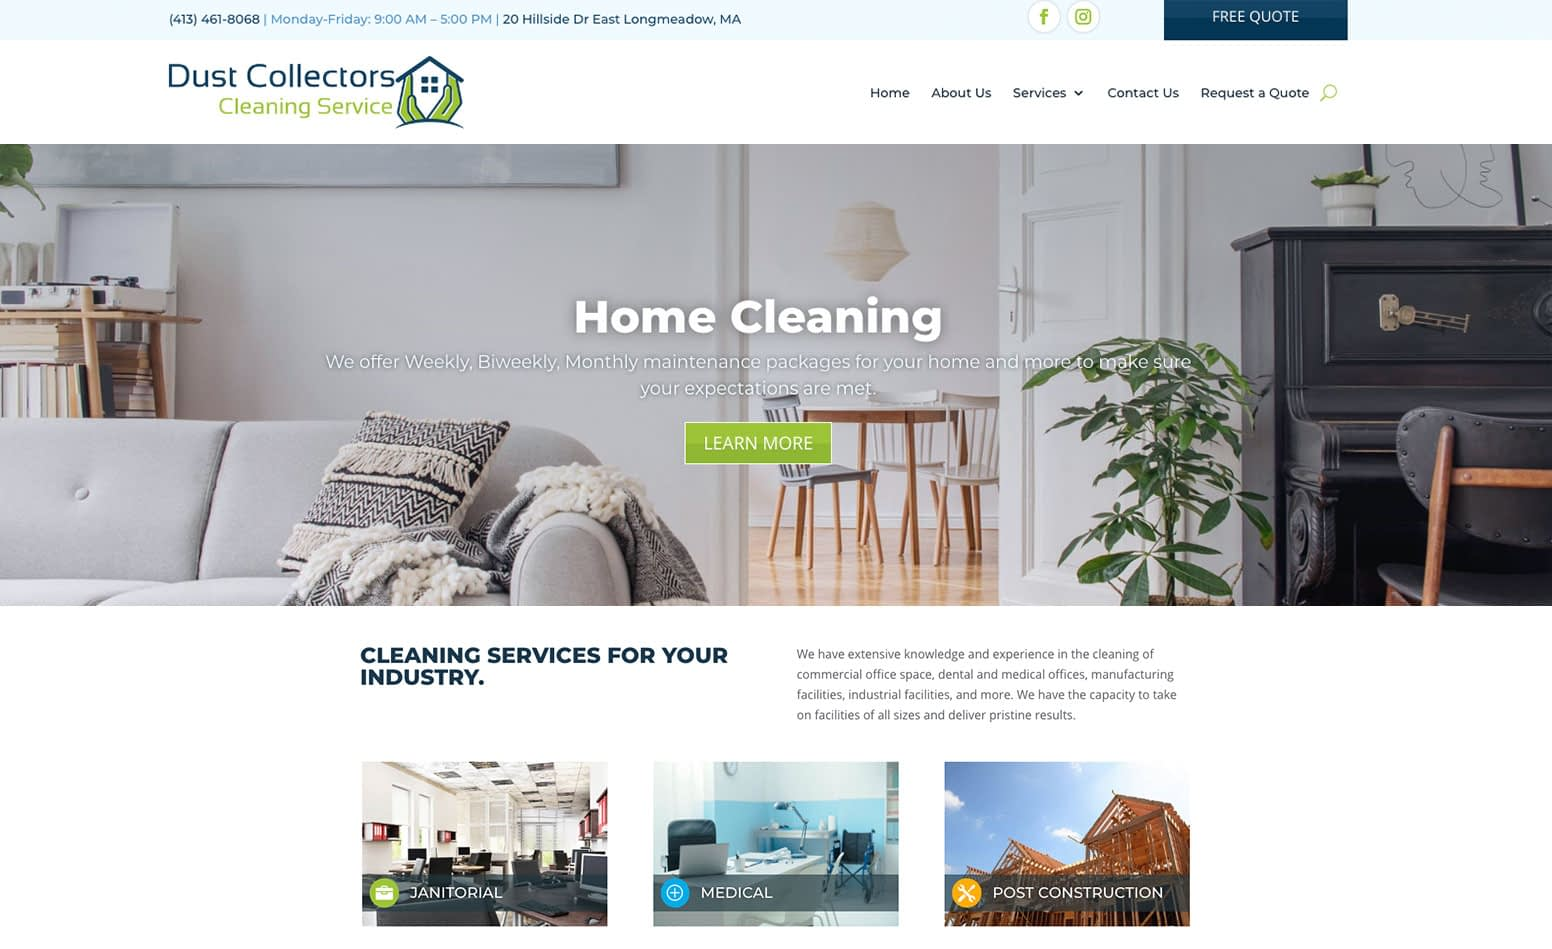 Dust Collectors Cleaning Service website, web design company MA, web design company Western MA, web design company CT, marketing agency CT